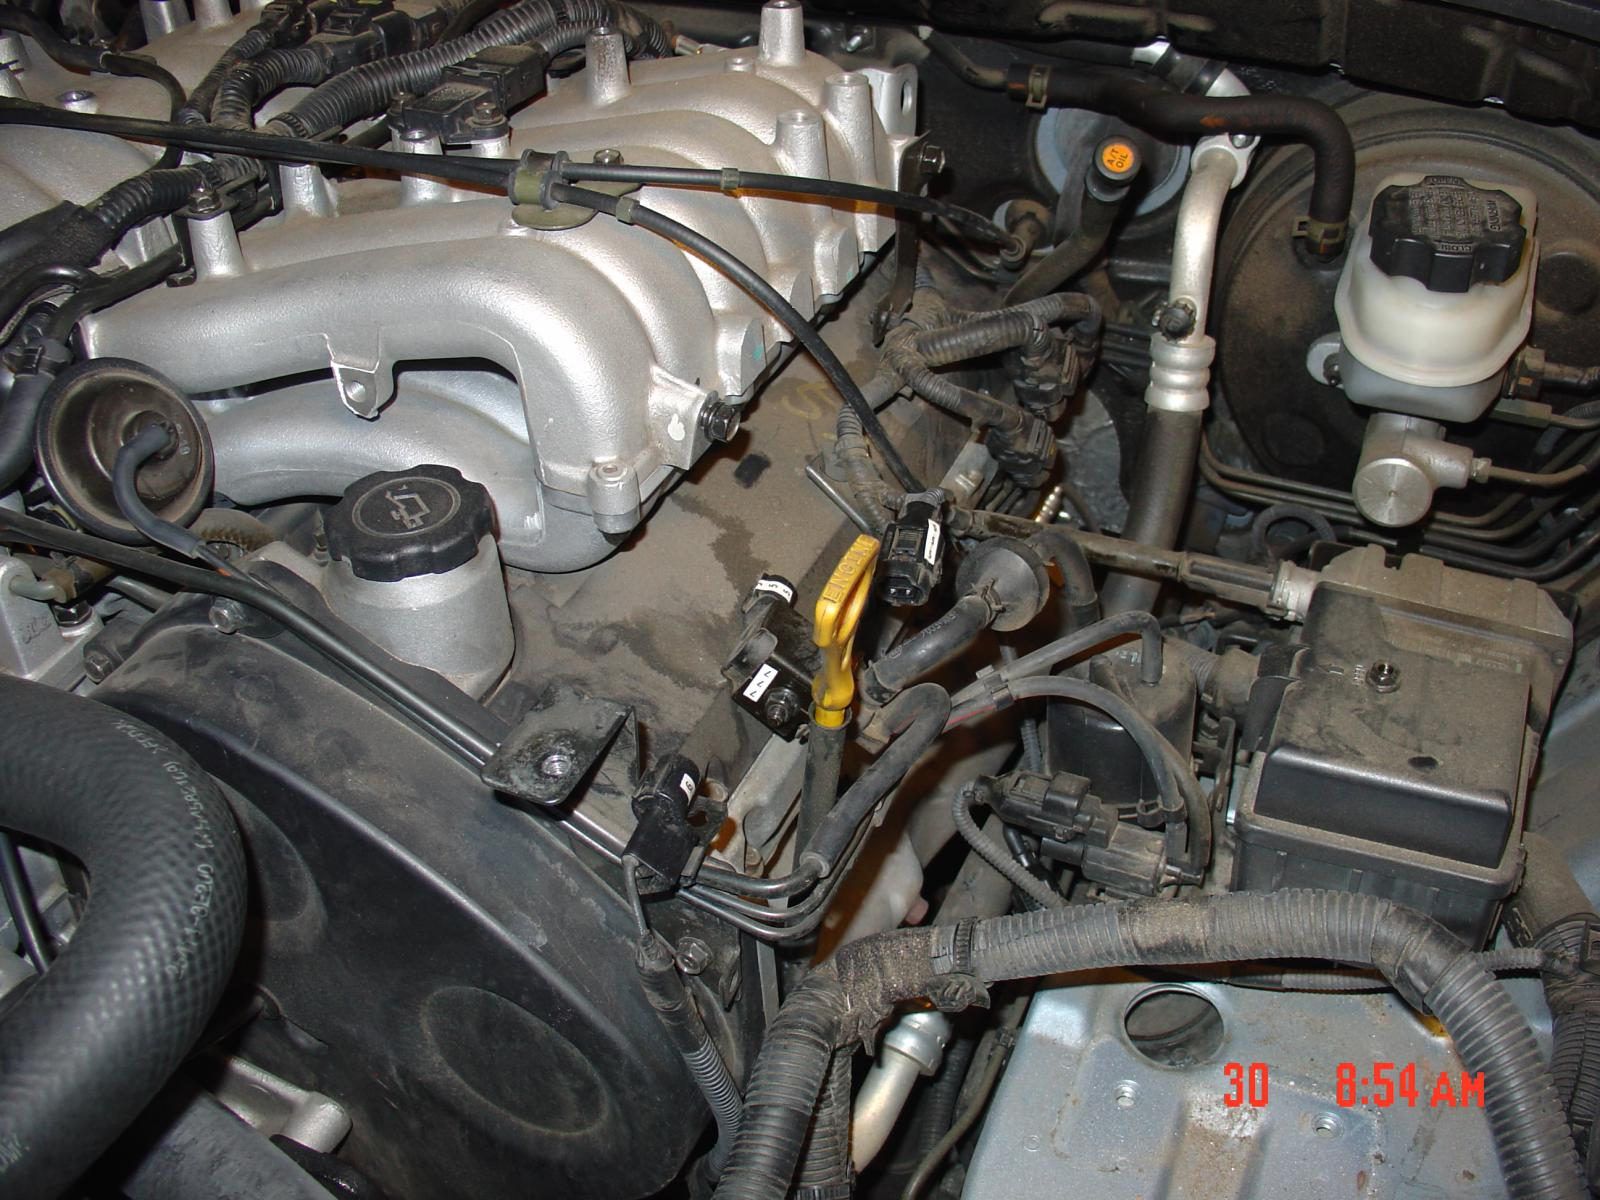 2004 F150 Fuel Filter Location moreover Fuel Solenoid Wiring Diagram Get Free Image About likewise Kia Sorento 2010 Trunk Wiring Diagram further Parts Diagram 2005 Kia Sorento Belt Hyundai Sonata in addition 2003 Kia Spectra Fuse Box Diagram. on kia soul fuel filter location